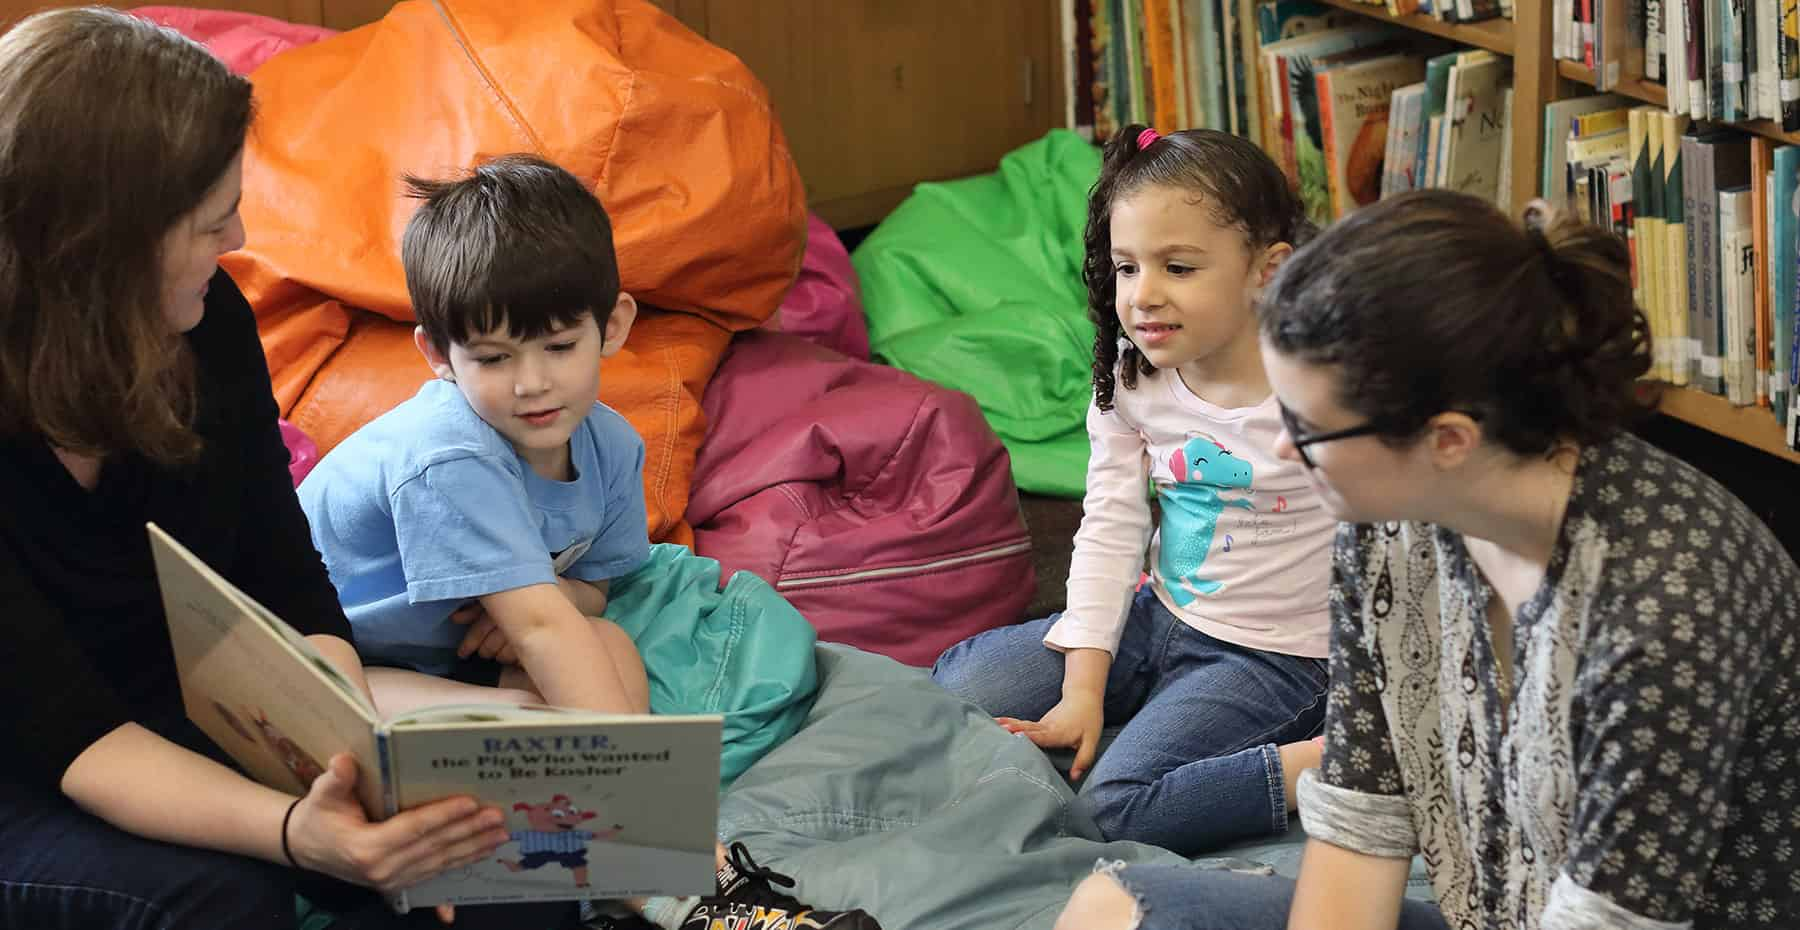 An image of a woman with short brown hair interacting and reading a story to 3 children who sit around, smiling and listening to the book.